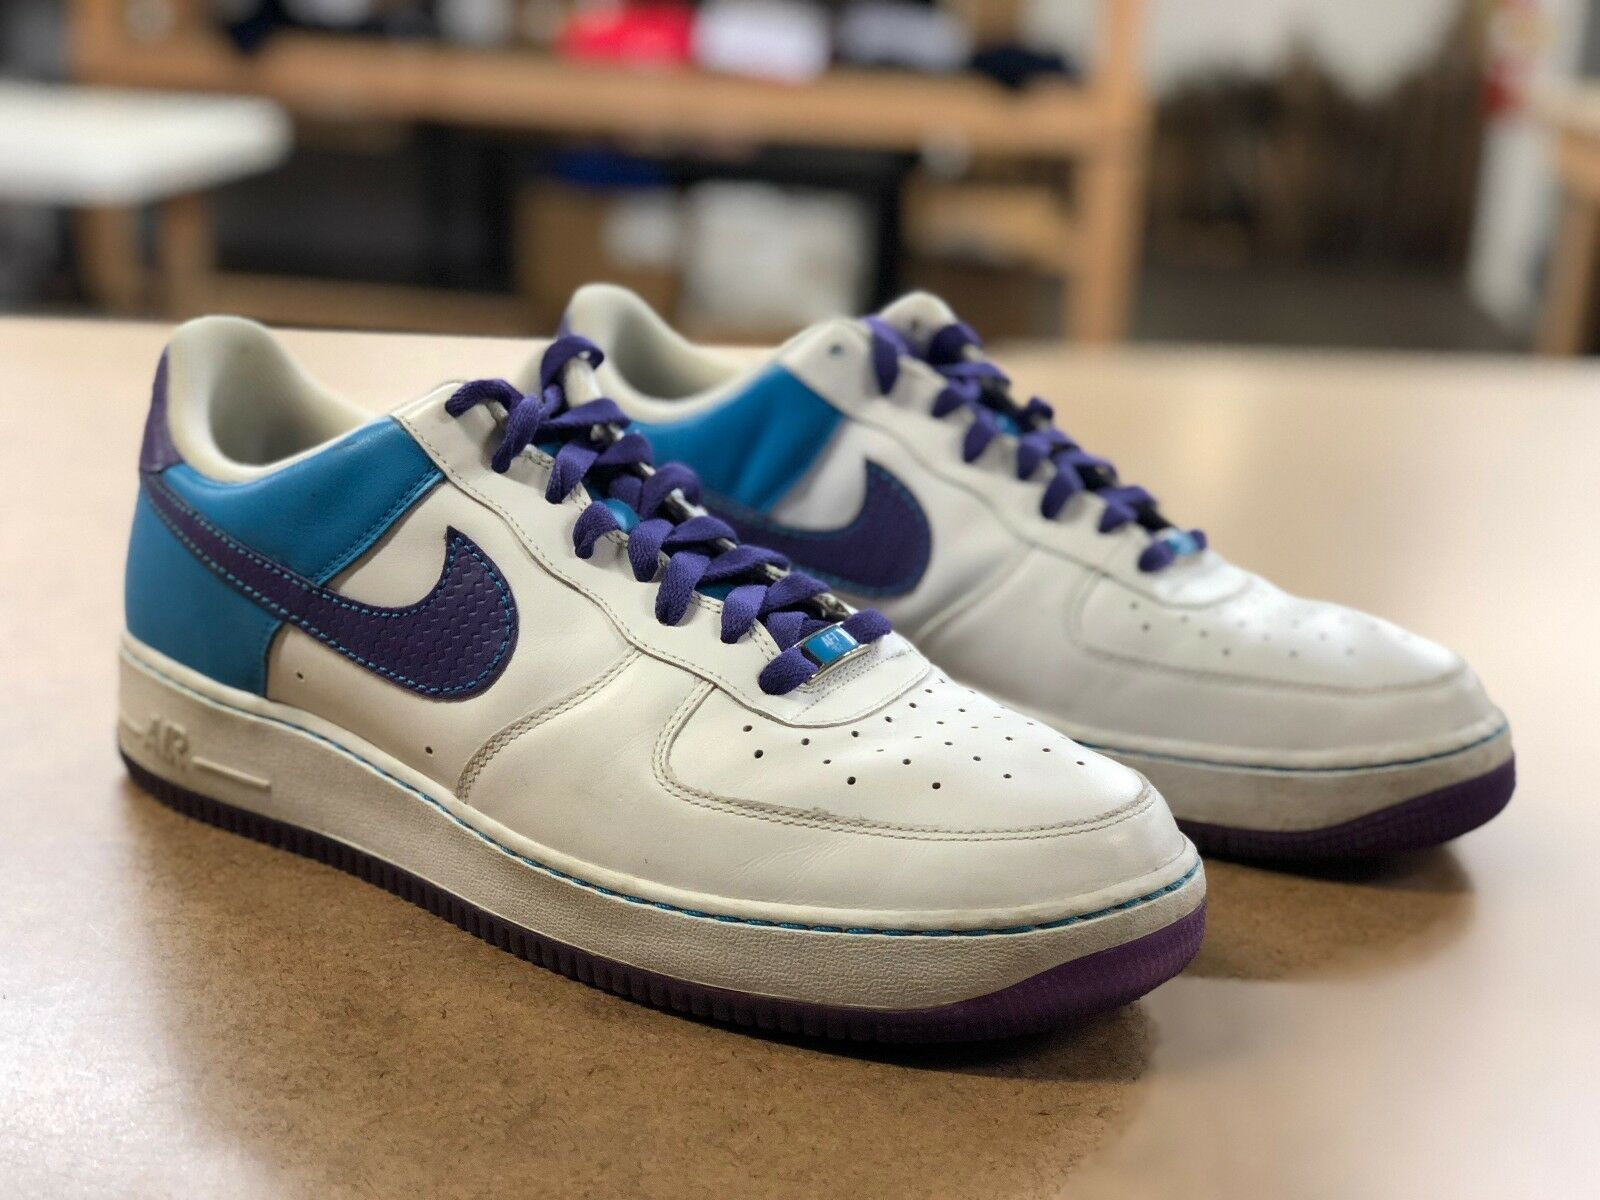 Nike Air Force Ones low top  - USED size 13 The most popular shoes for men and women